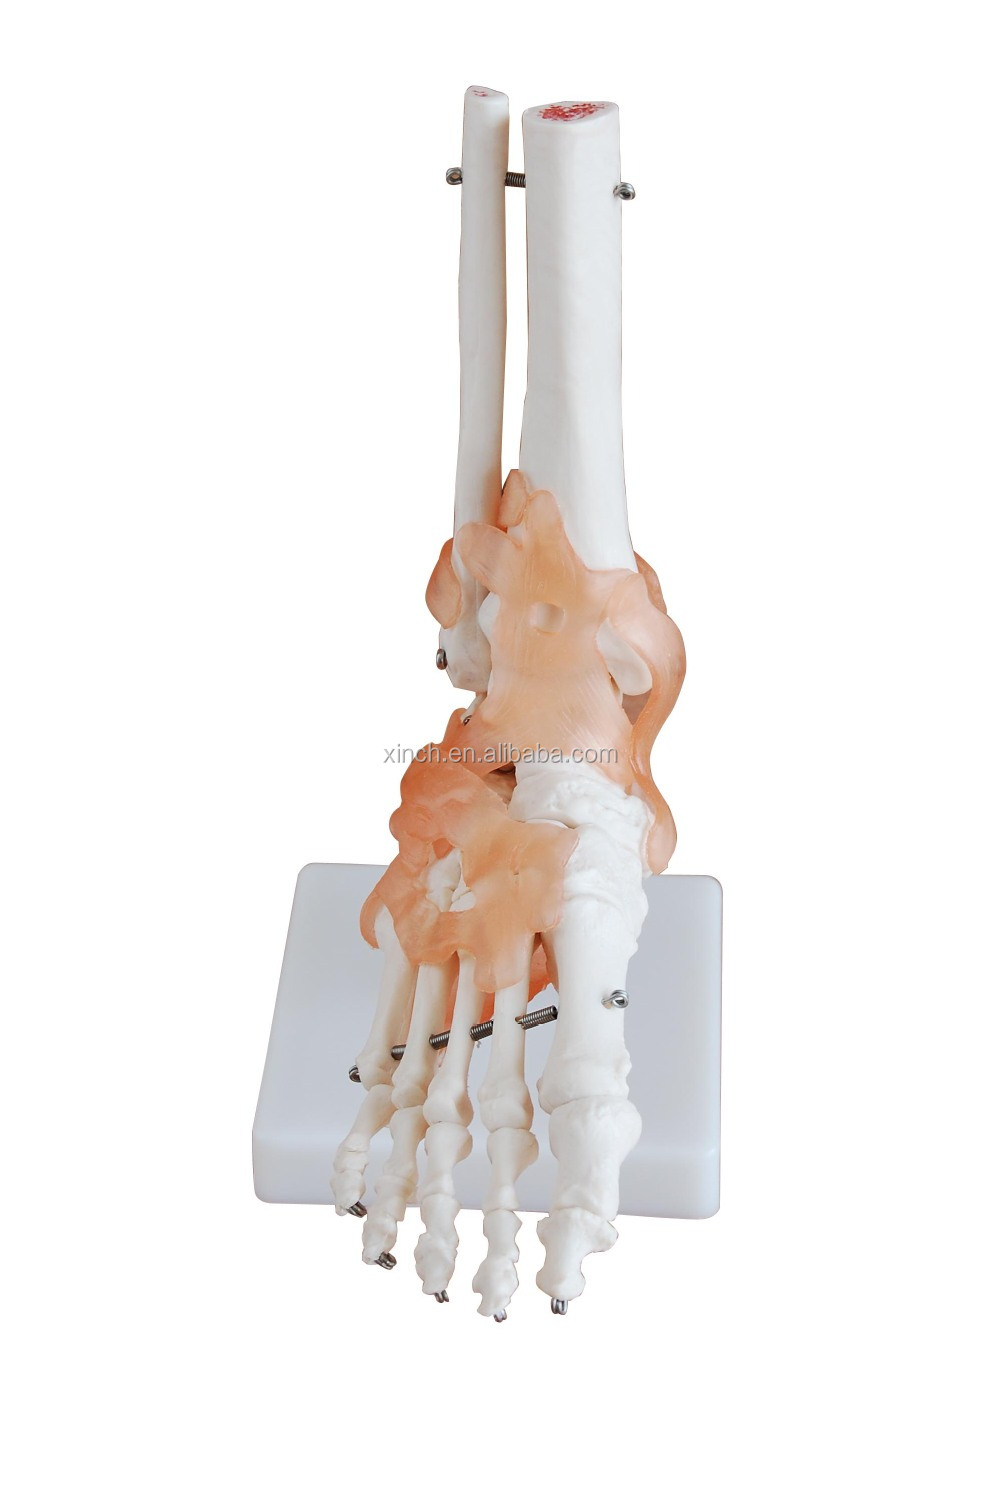 Life-Size Plastic Foot Joint Model with Ligaments